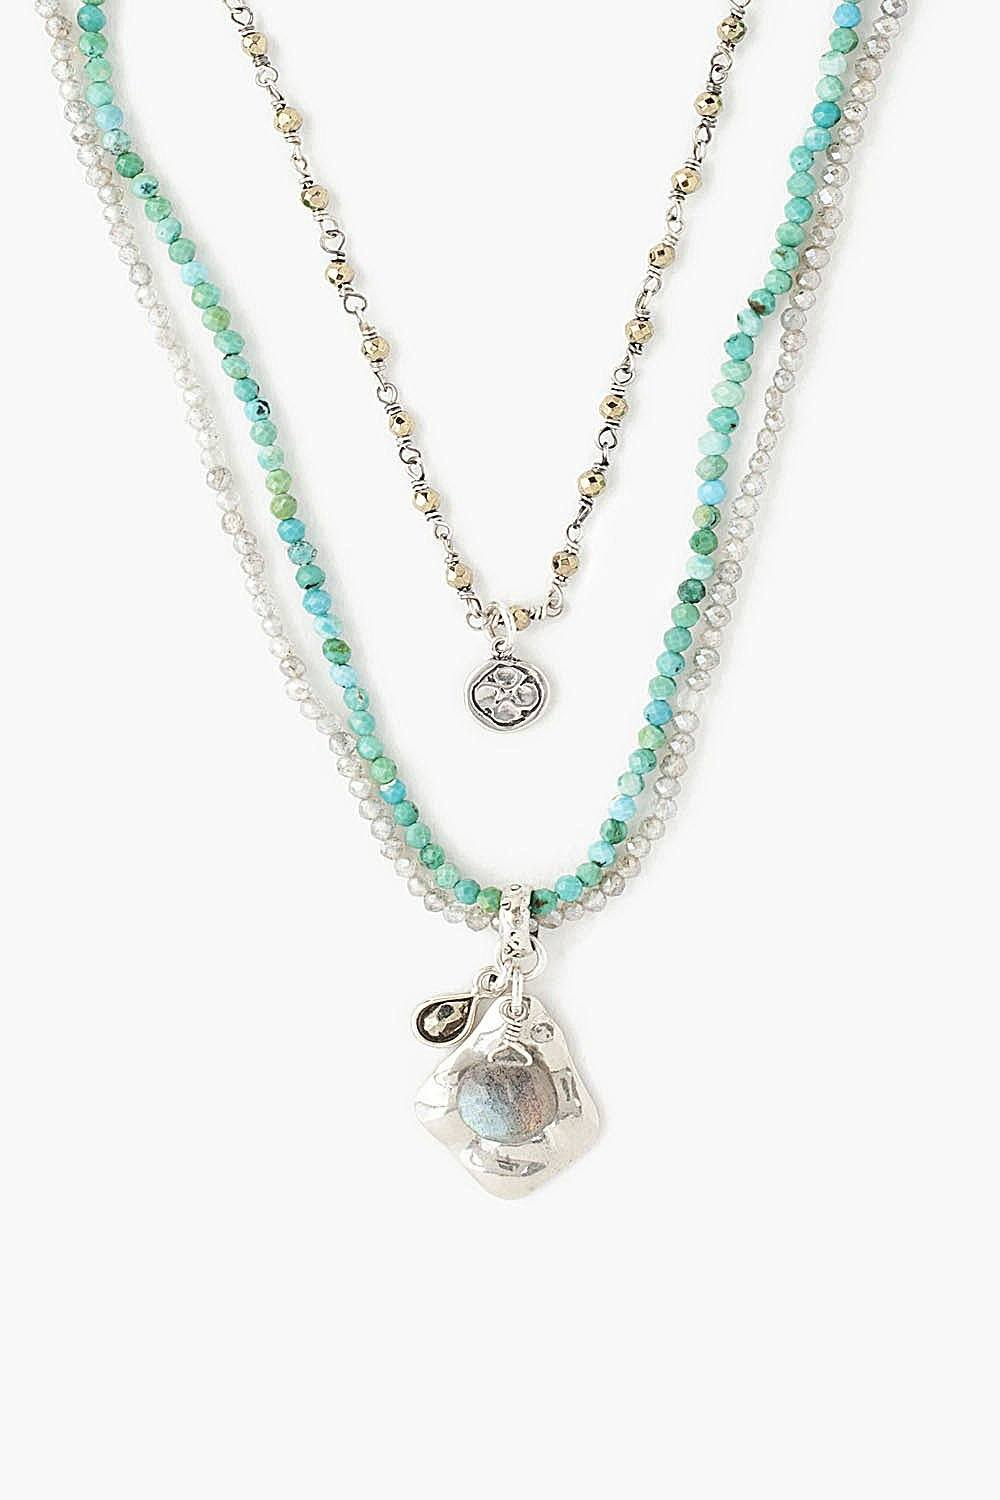 Turquoise Mix Multi-Strand Necklace